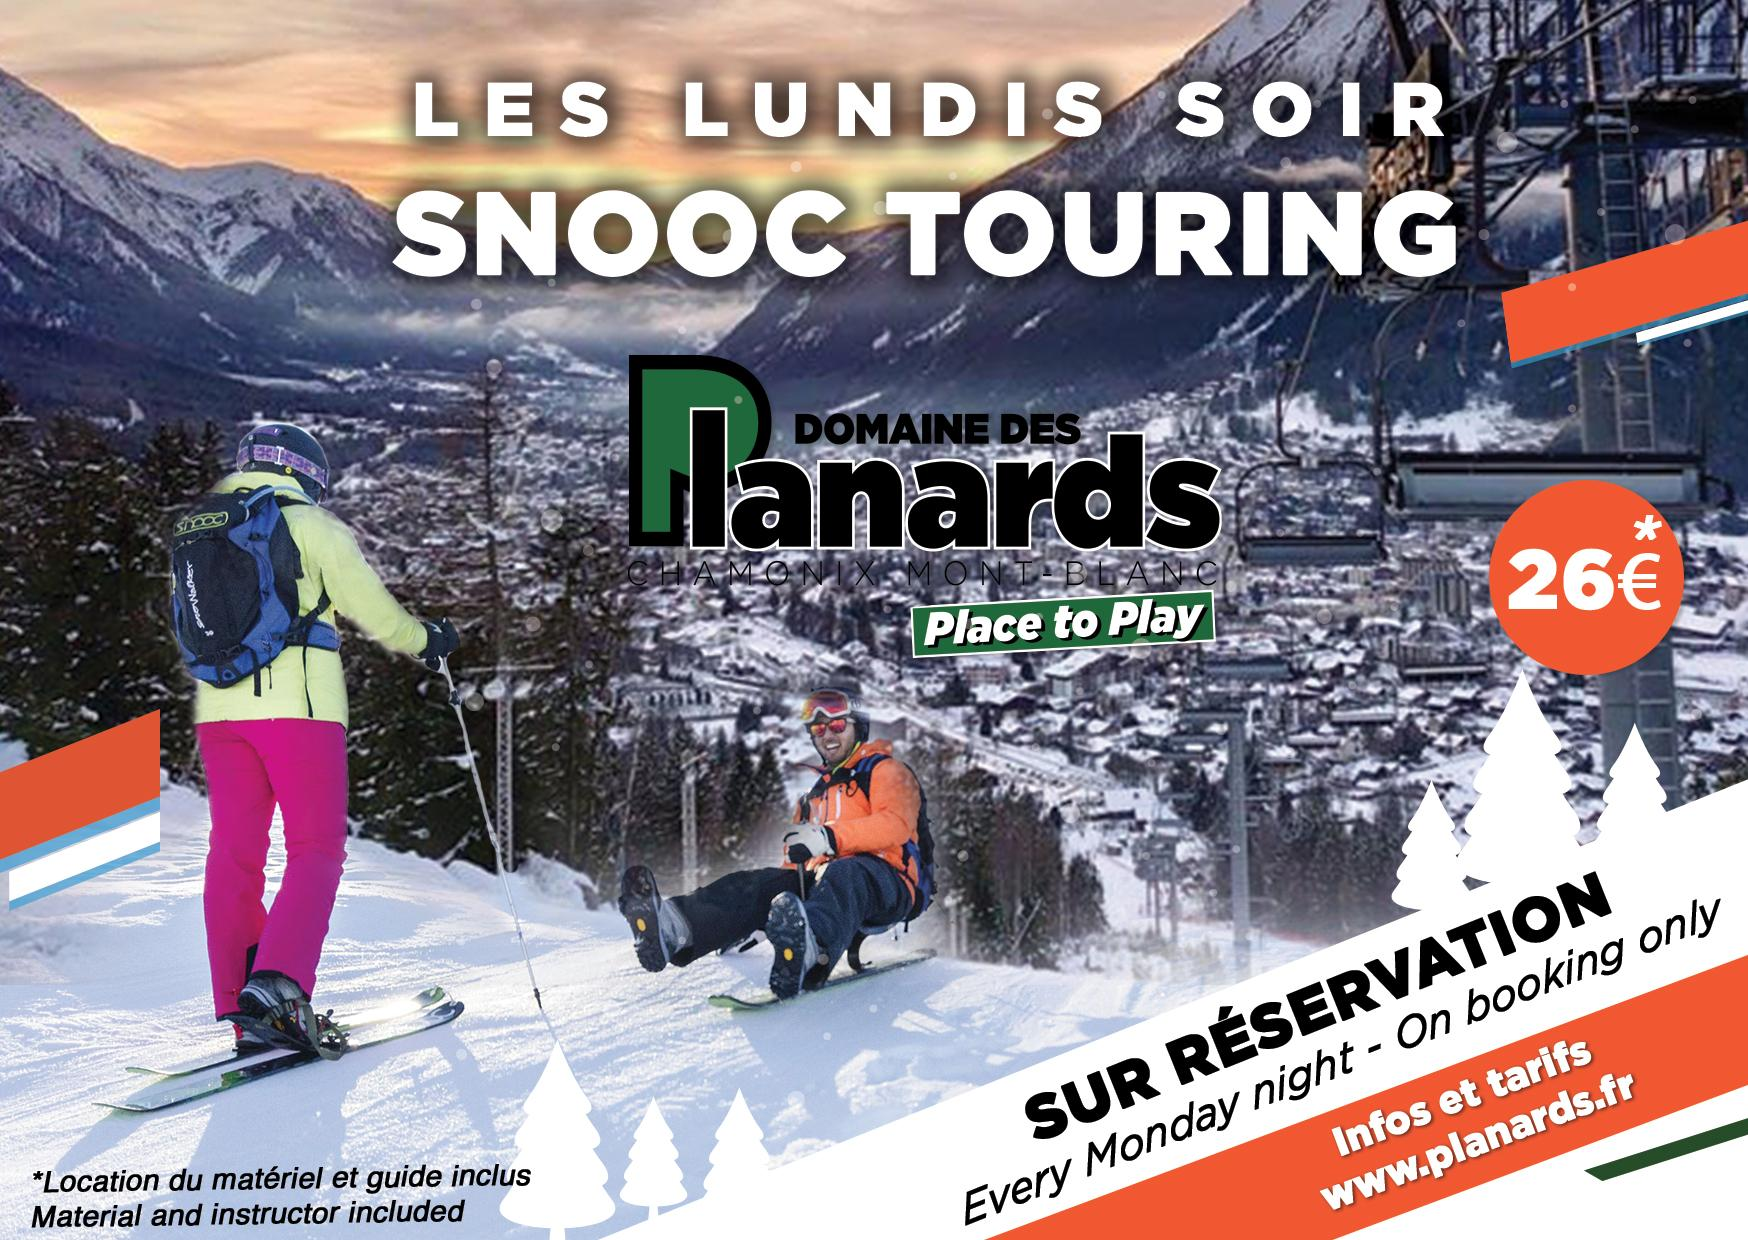 Lundis soirs snooc touring